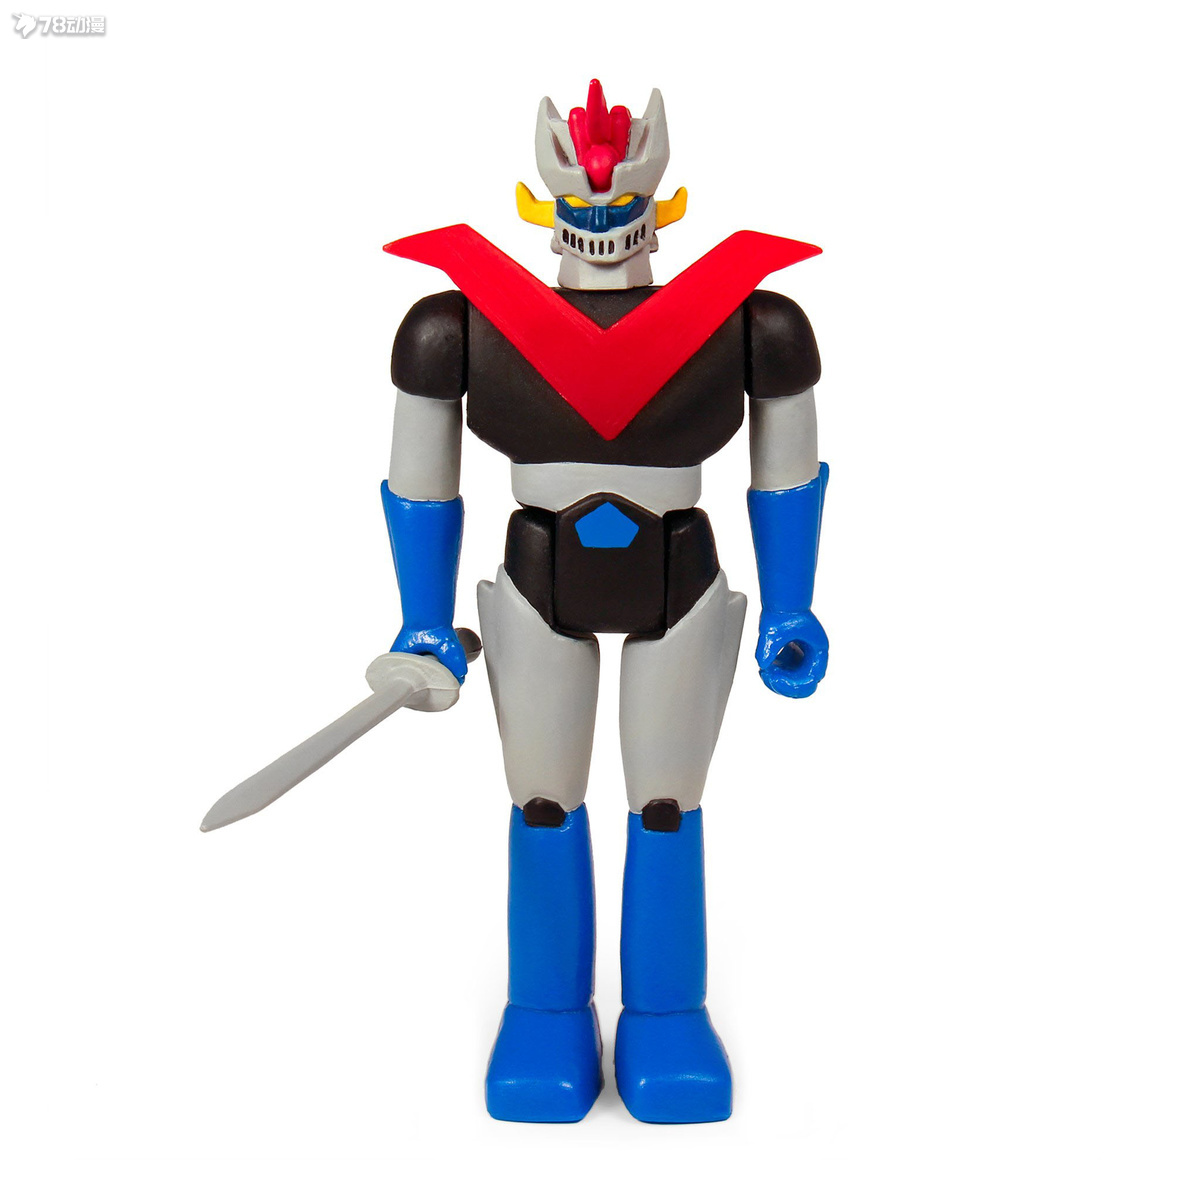 Shogun-ReAction-Figure-Great-Mazinger-Cartoon-2.jpg